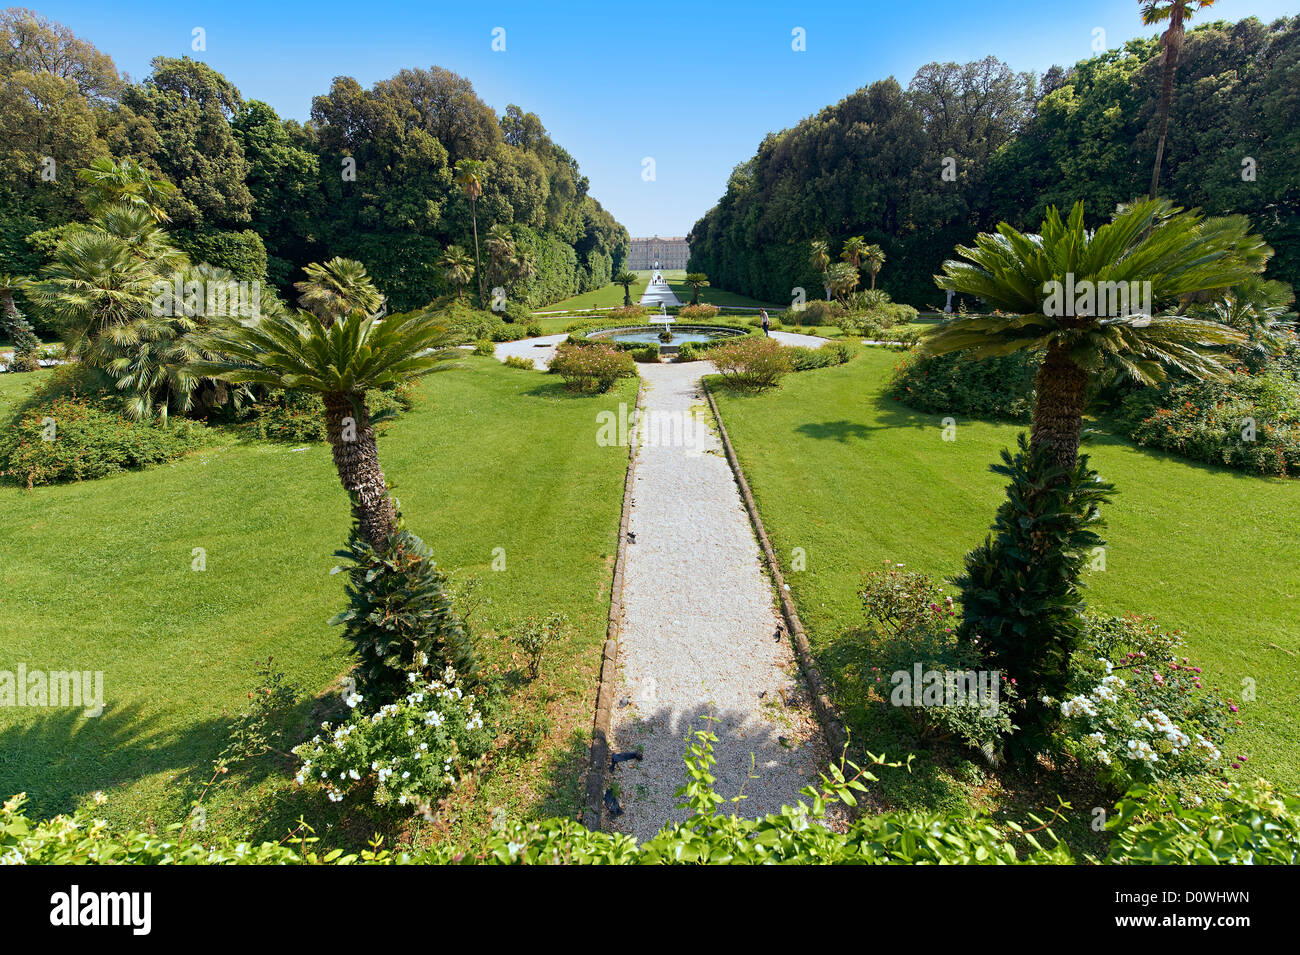 The garden of the Bourbon Kings of Naples Royal Palace of Caserta, Italy, looking towards the palace. - Stock Image